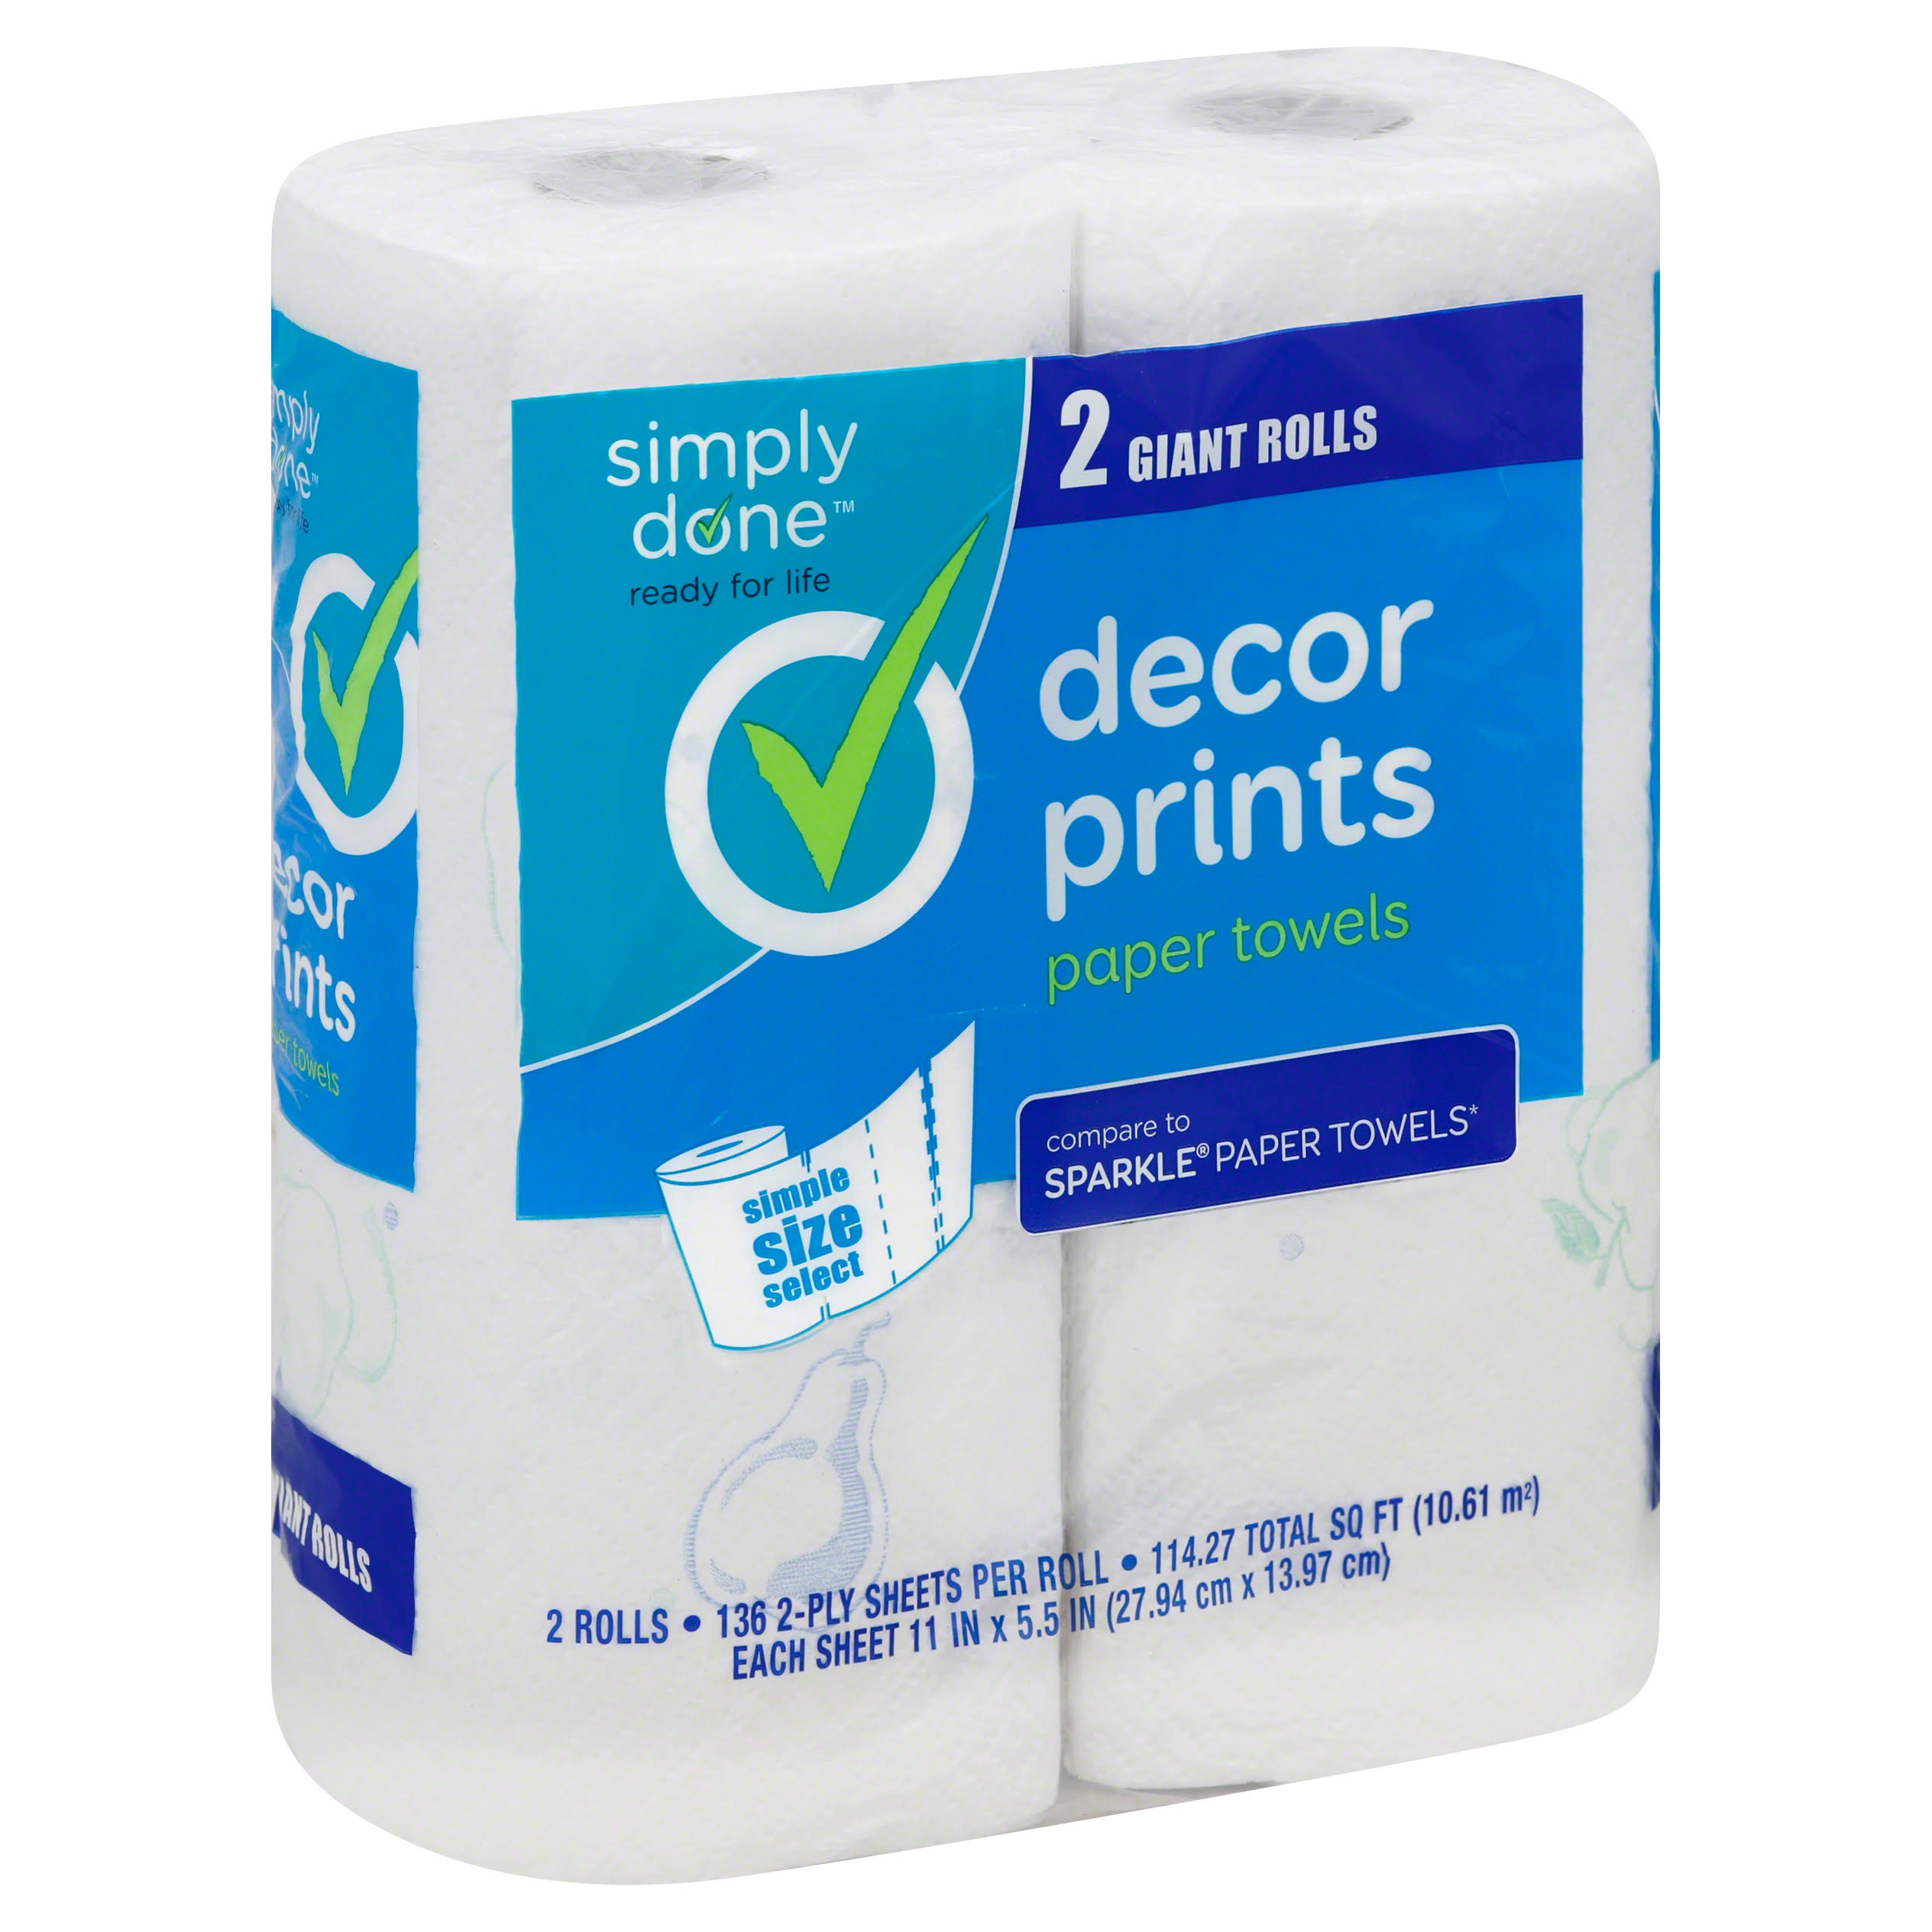 Simply Done Paper Towels, Simple Size Select, Giant Rolls, Decor Prints, 2-Ply - 2 rolls